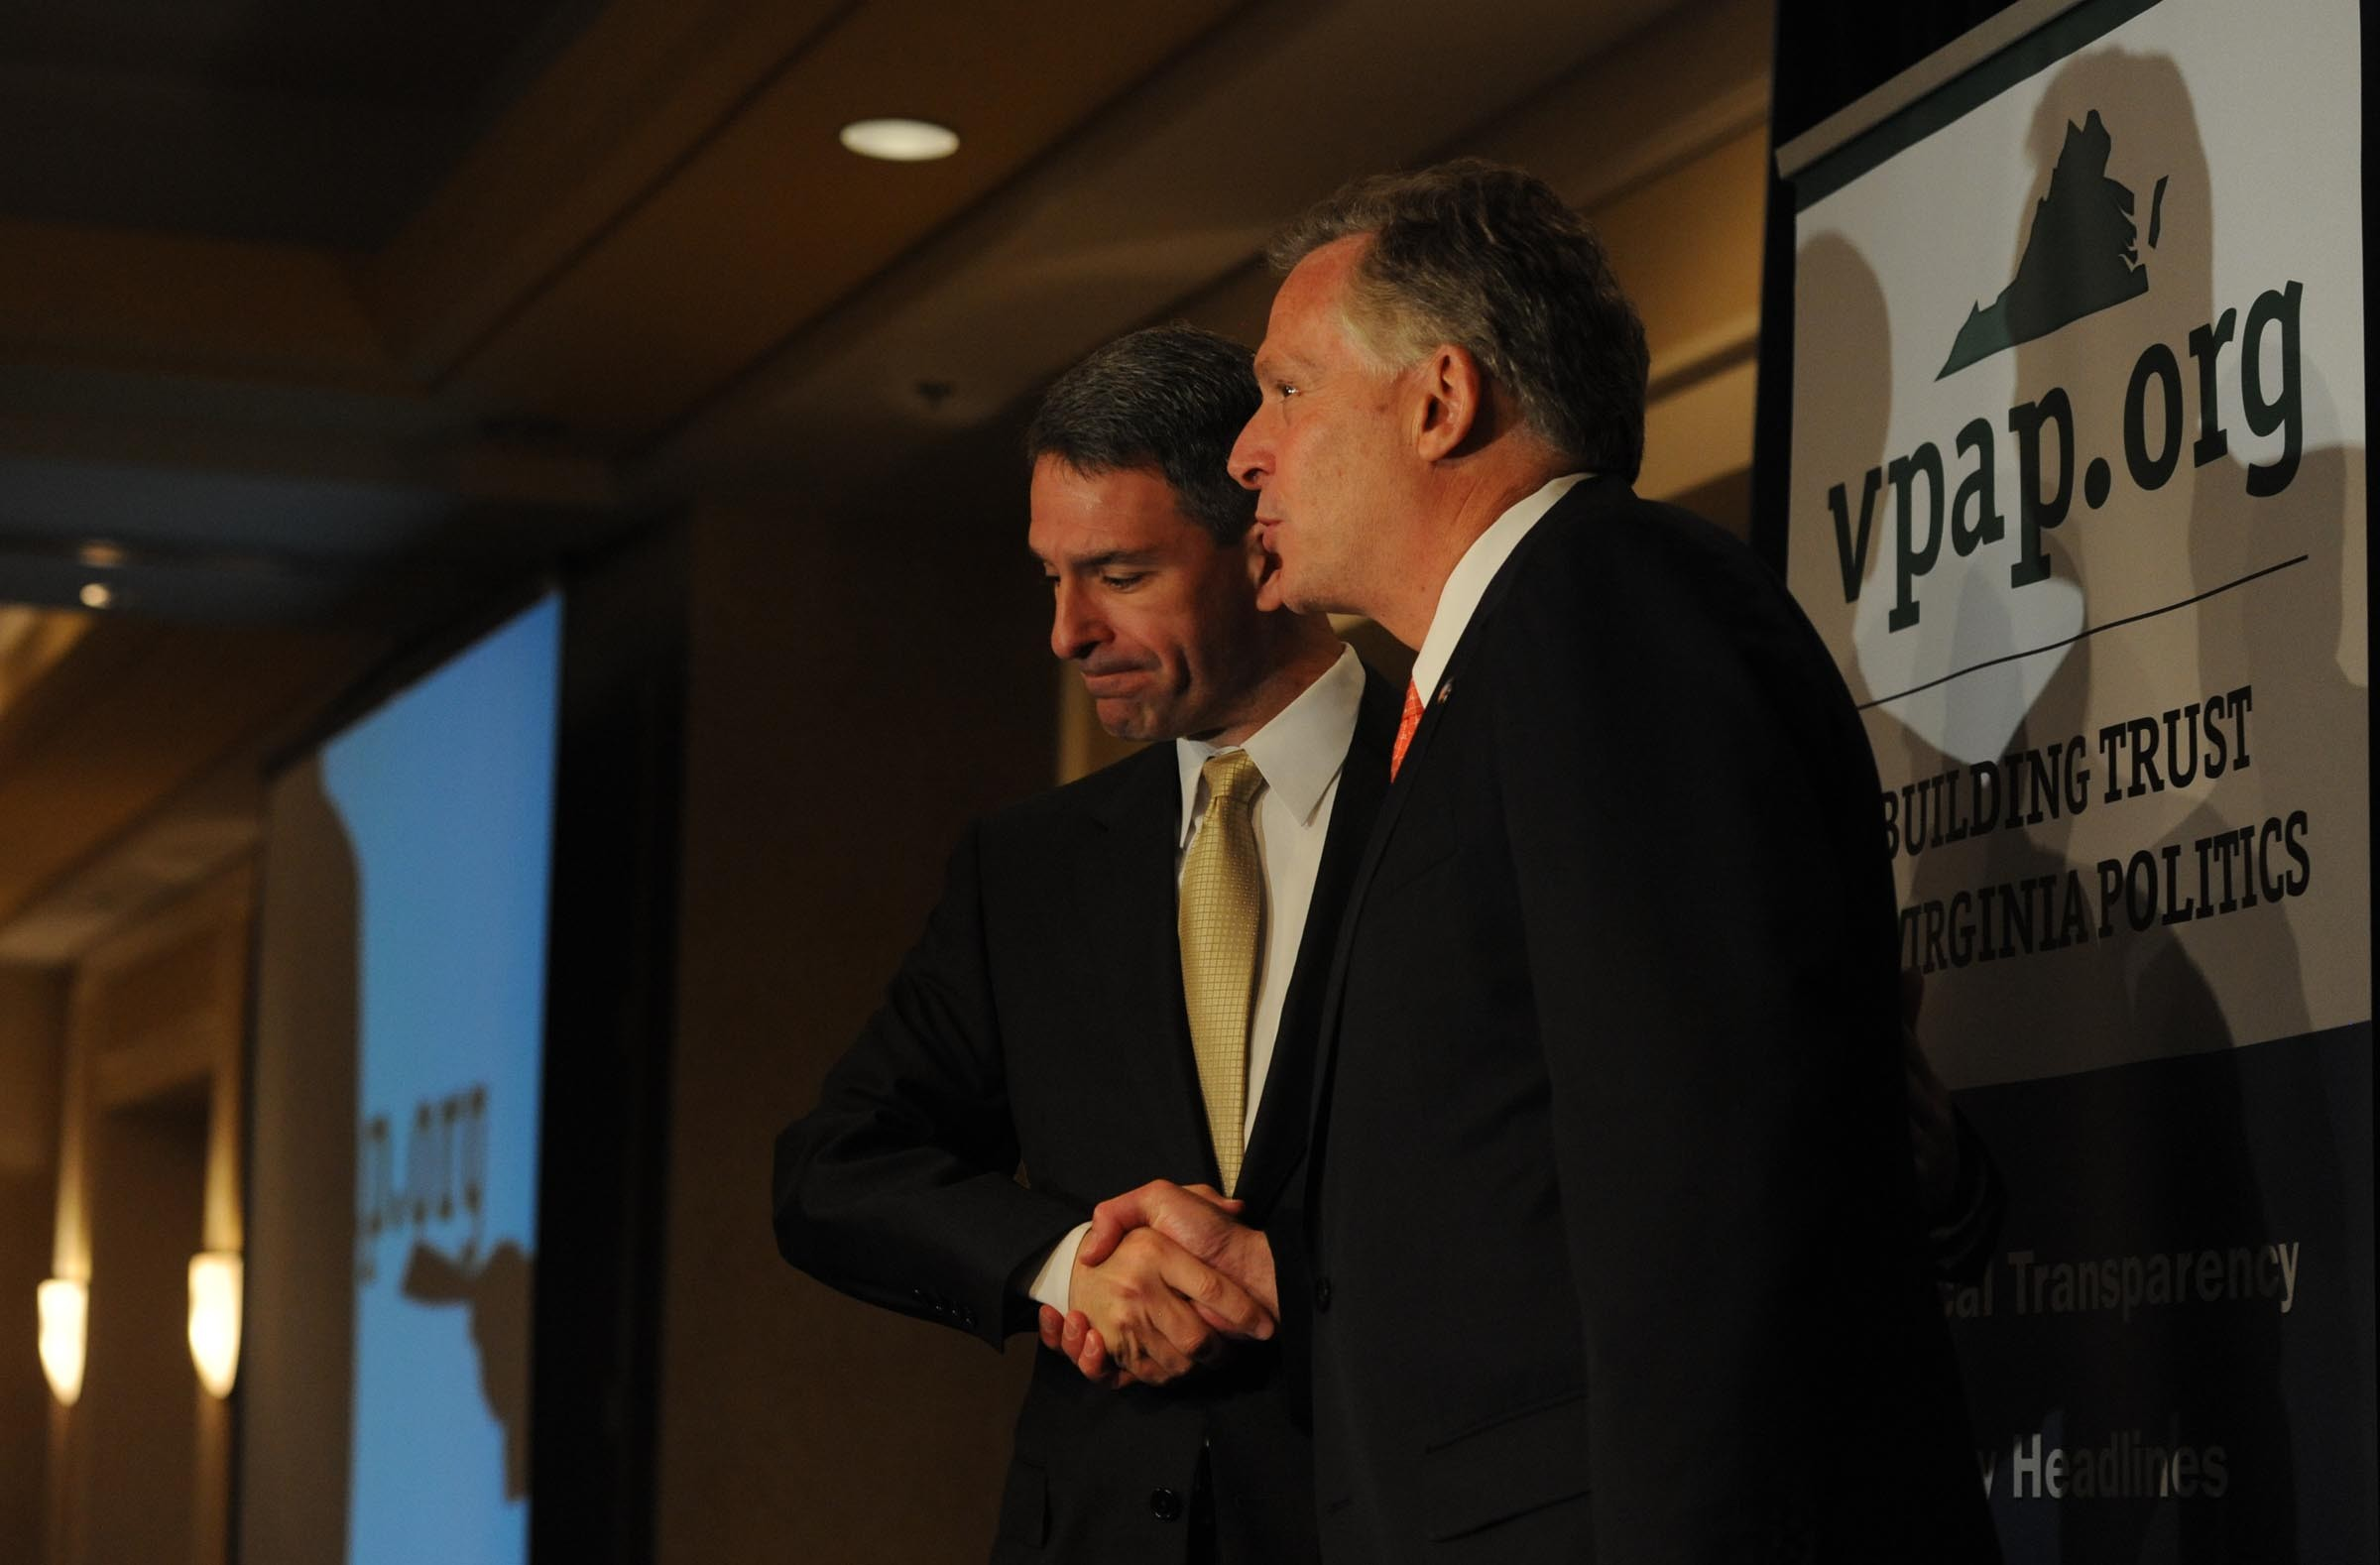 Gubernatorial candidates Republican Ken Cuccinelli, left, and Democrat Terry McAuliffe at a May forum. Voters have expressed their dislike of both candidates. - SCOTT ELMQUIST